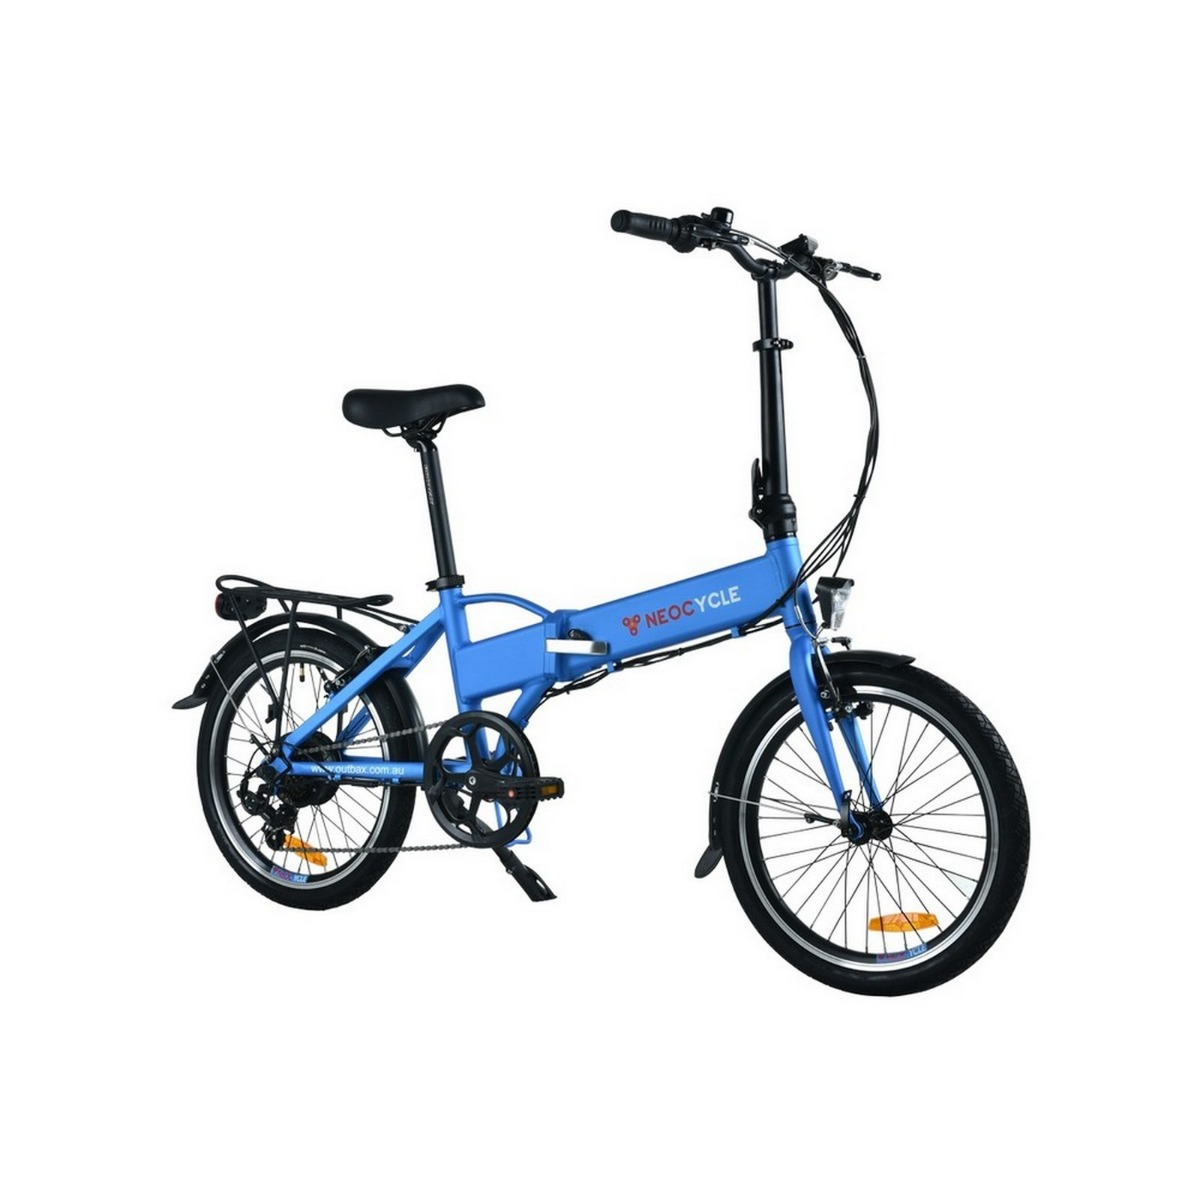 NEOCYCLE Hybrid - 36V BMX Electric Folding Bike Ebike Bicycle Lithium Battery